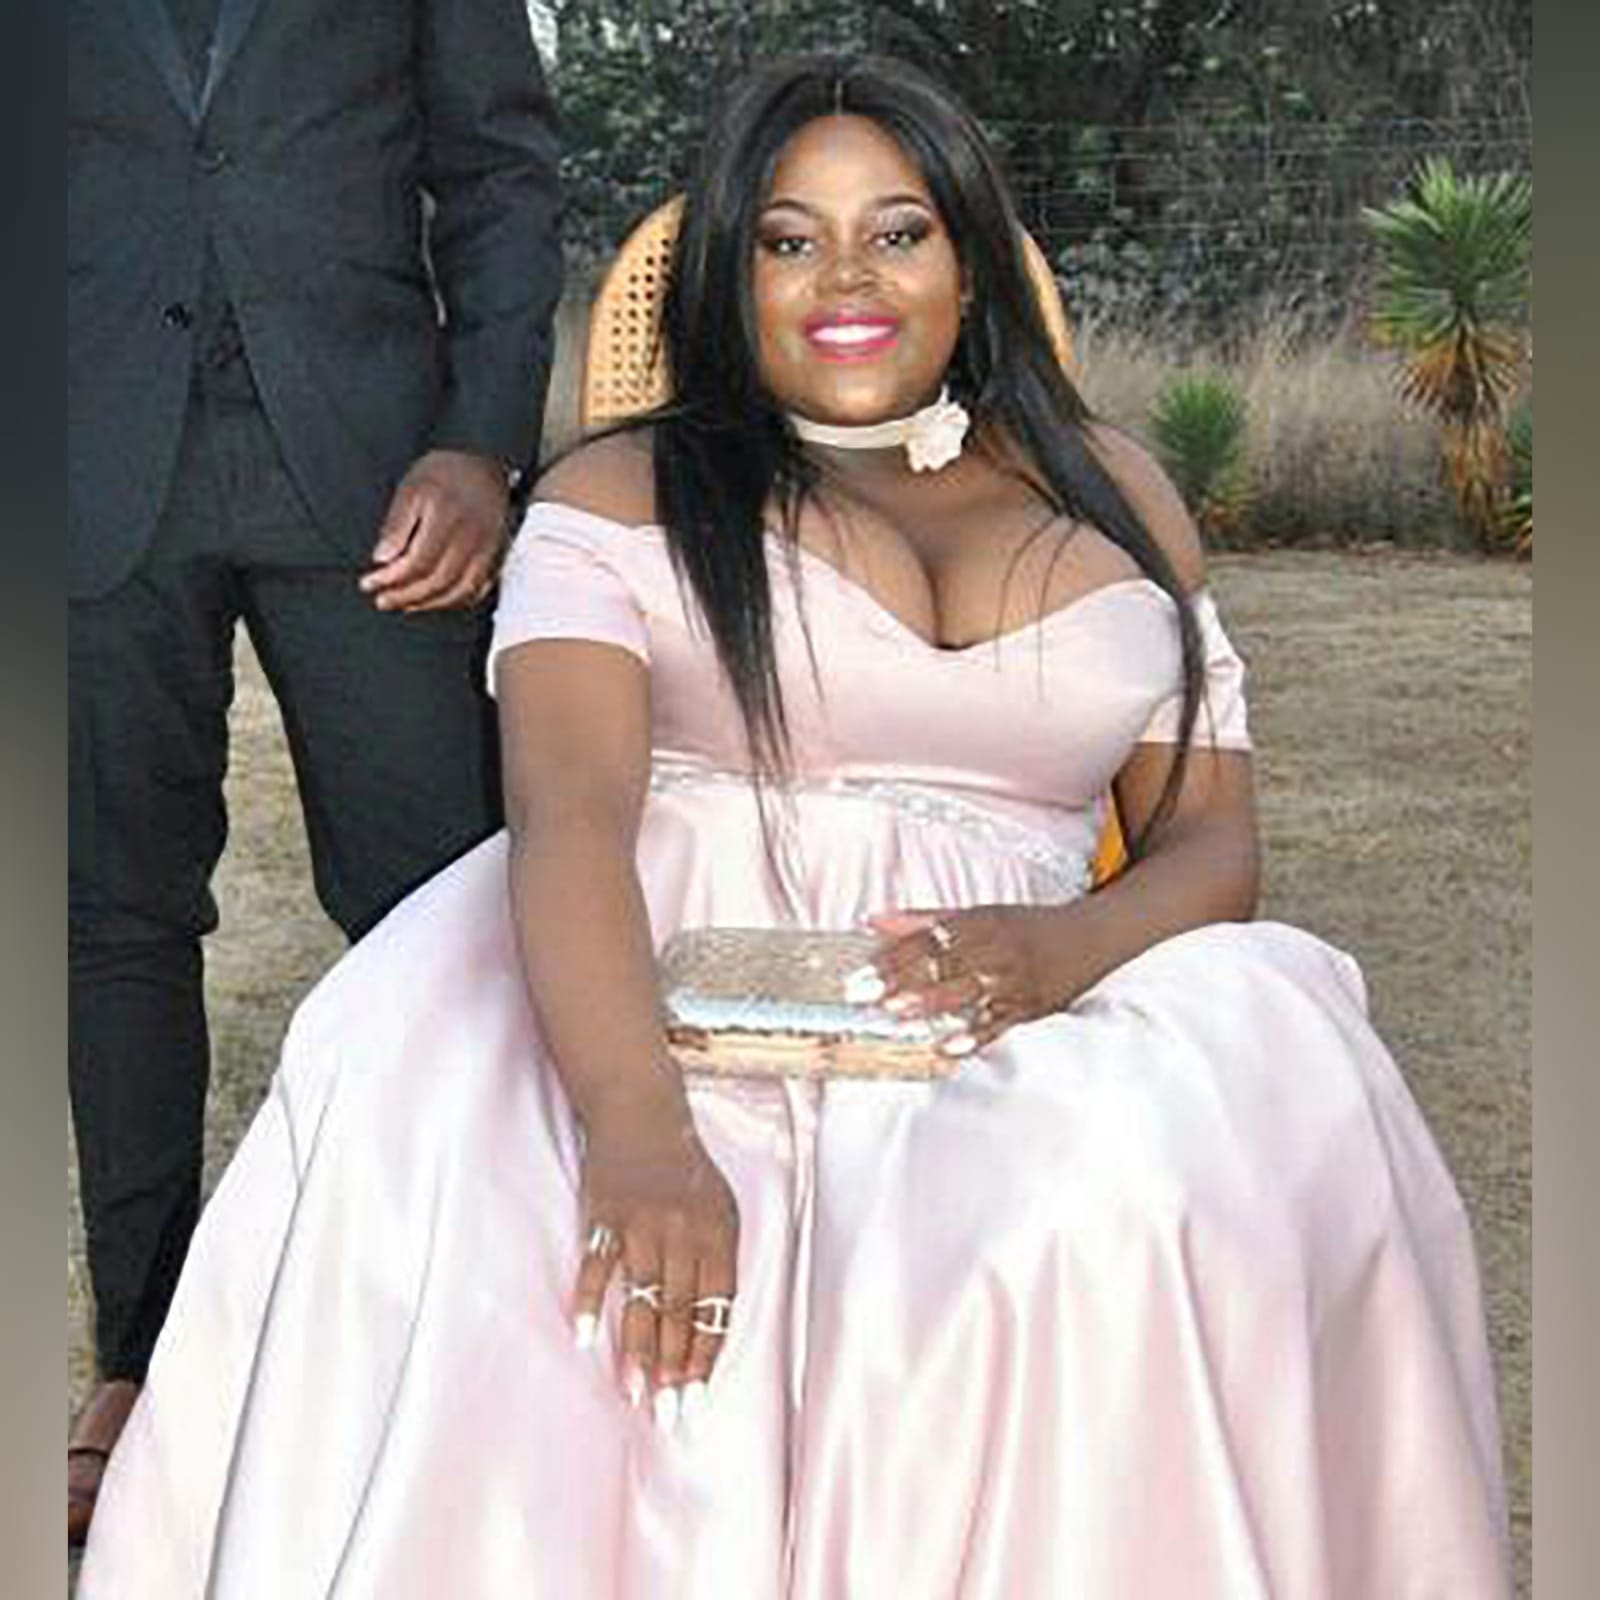 Pale pink satin plus size ceremony dress 1 pale pink satin plus size ceremony dress. Off shoulder, with a sweetheart neckline and off shoulder short sleeves. With a beaded waistline belt effect.